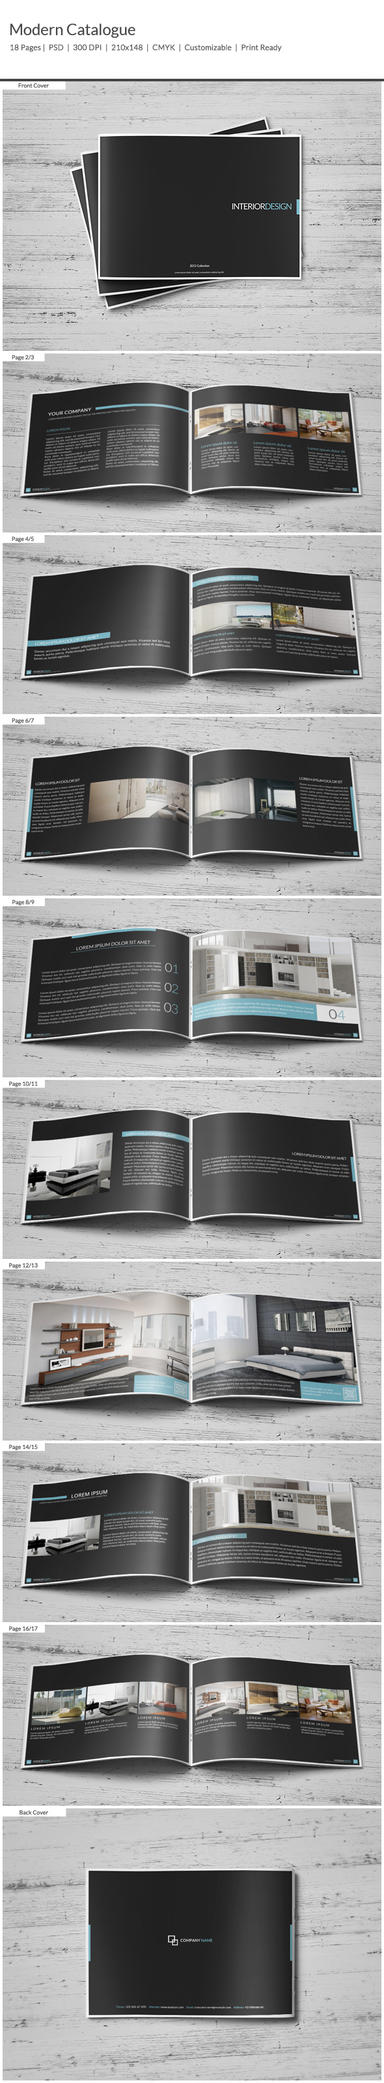 Modern Catalogue by shapshapy